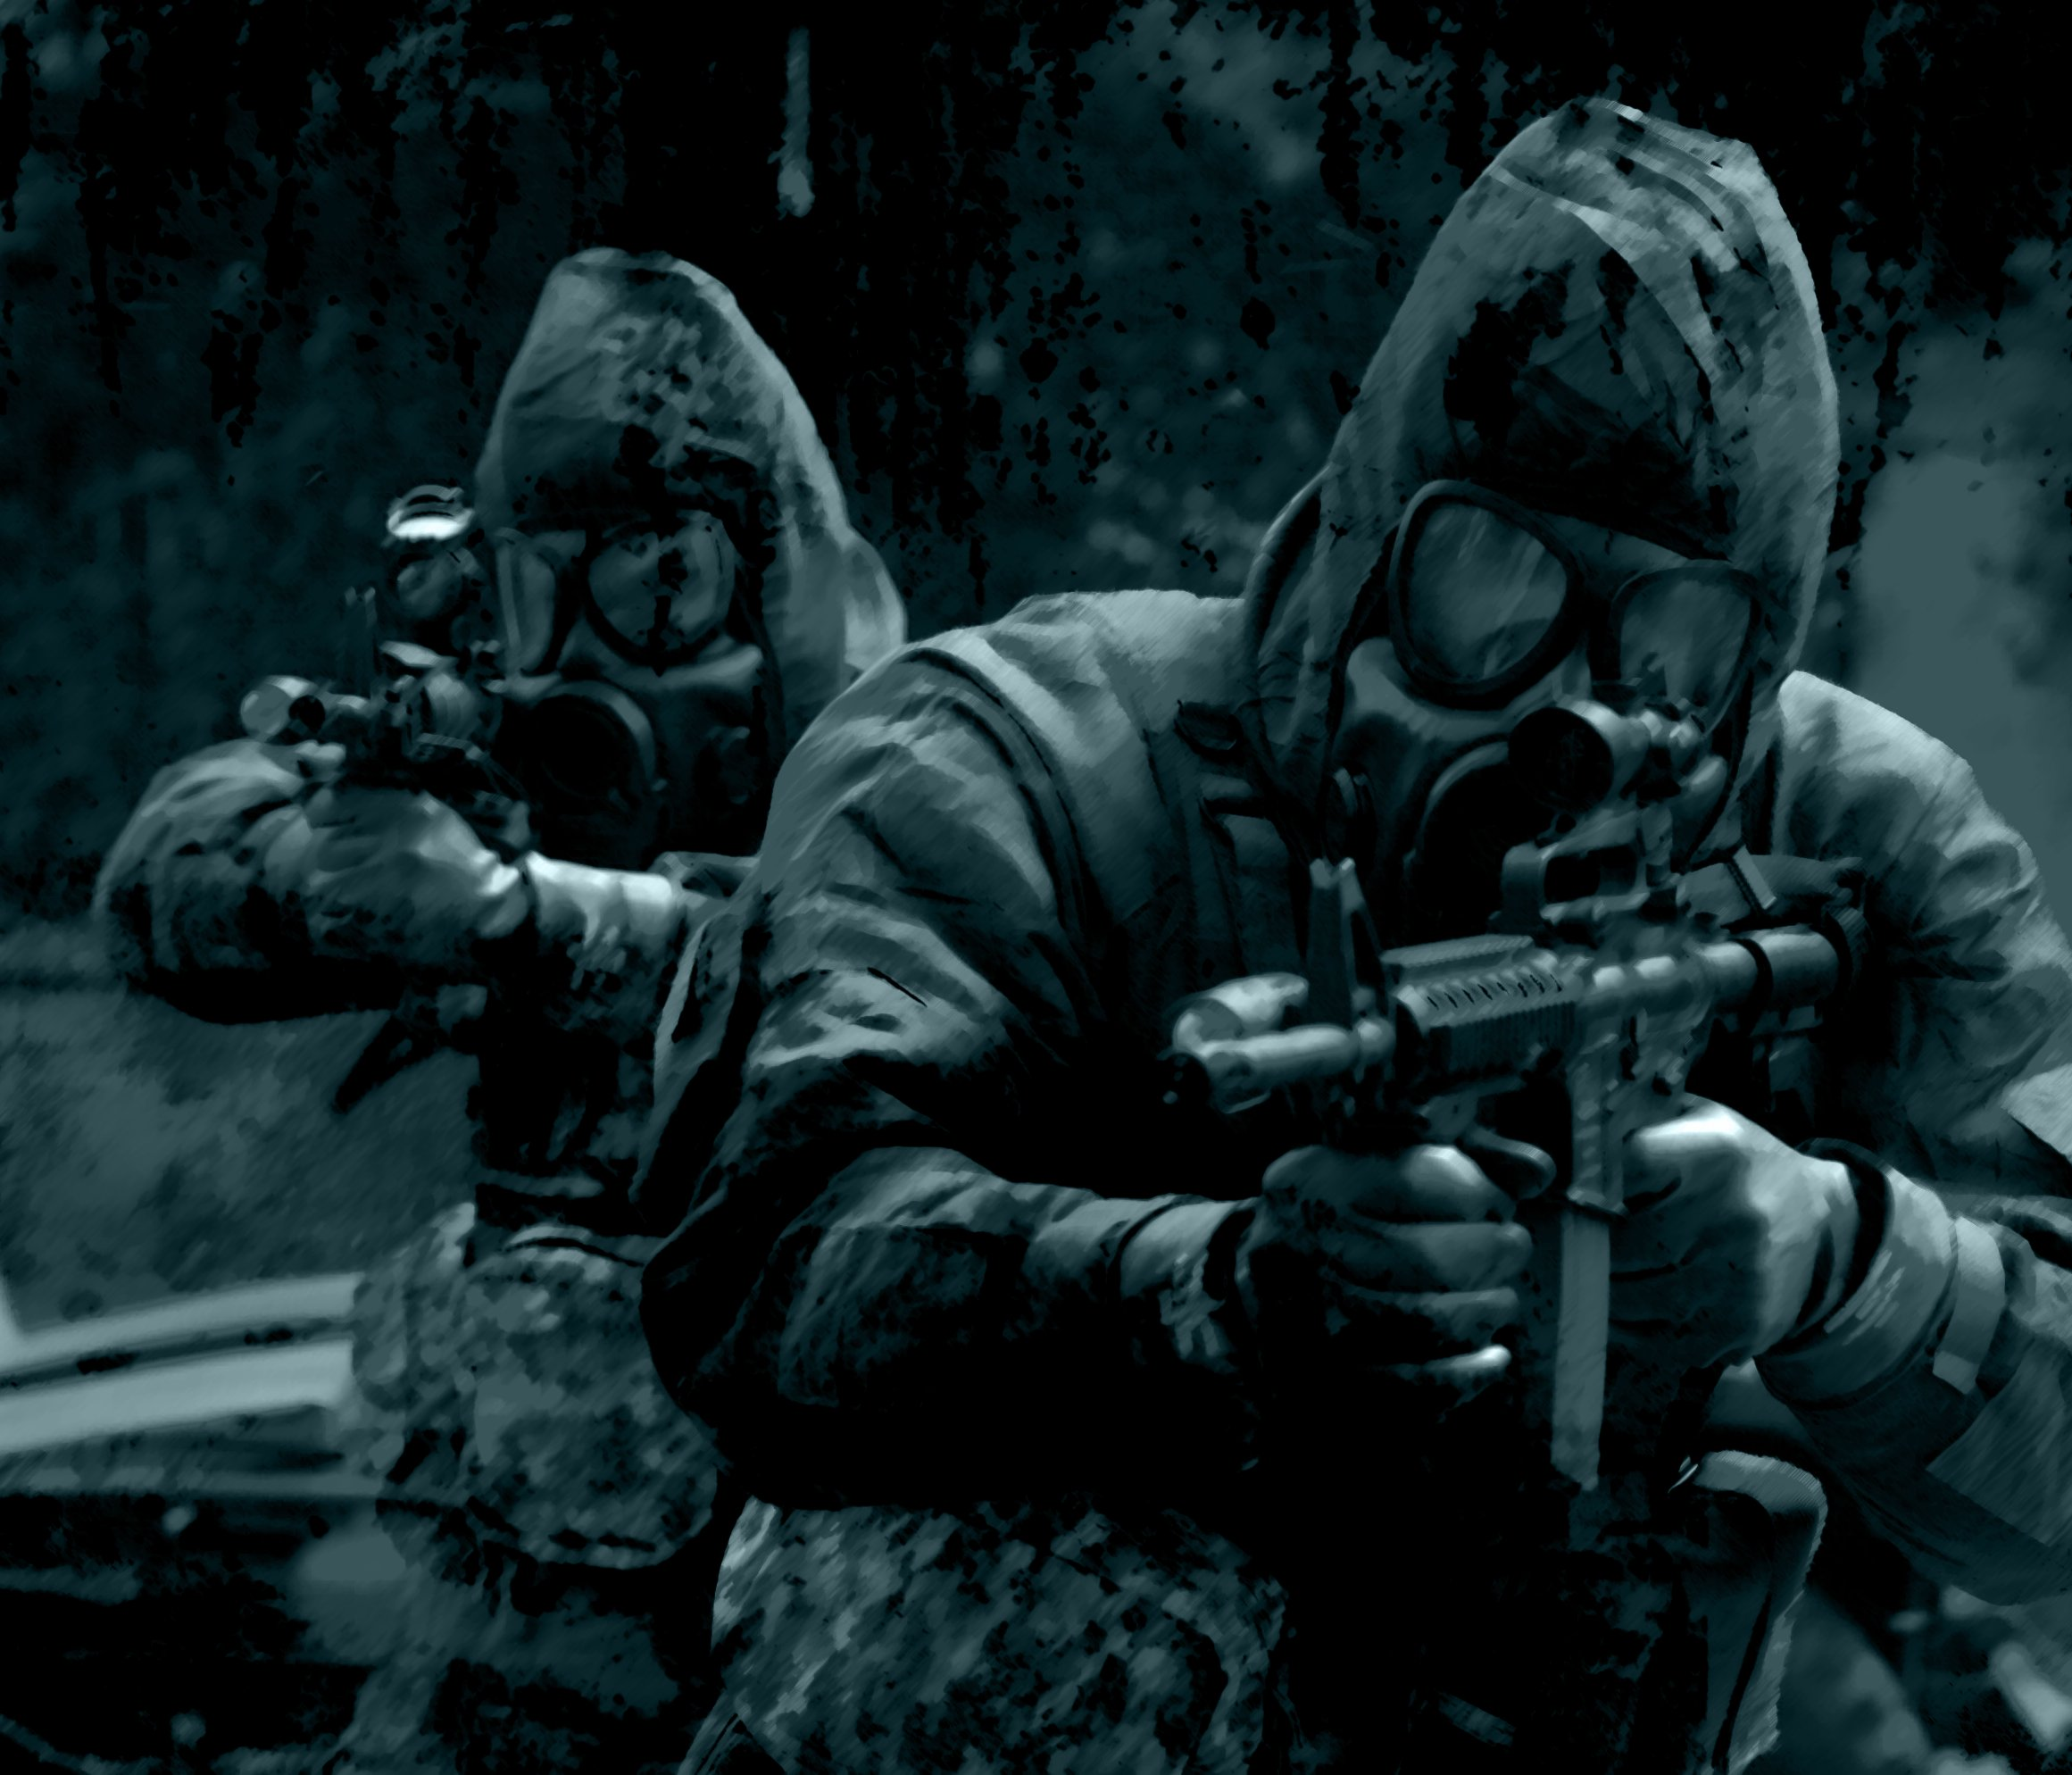 Apocalyptic Soldier Pics: 28 DAYS LATER Horror Sci-fi Thriller Dark Zombie